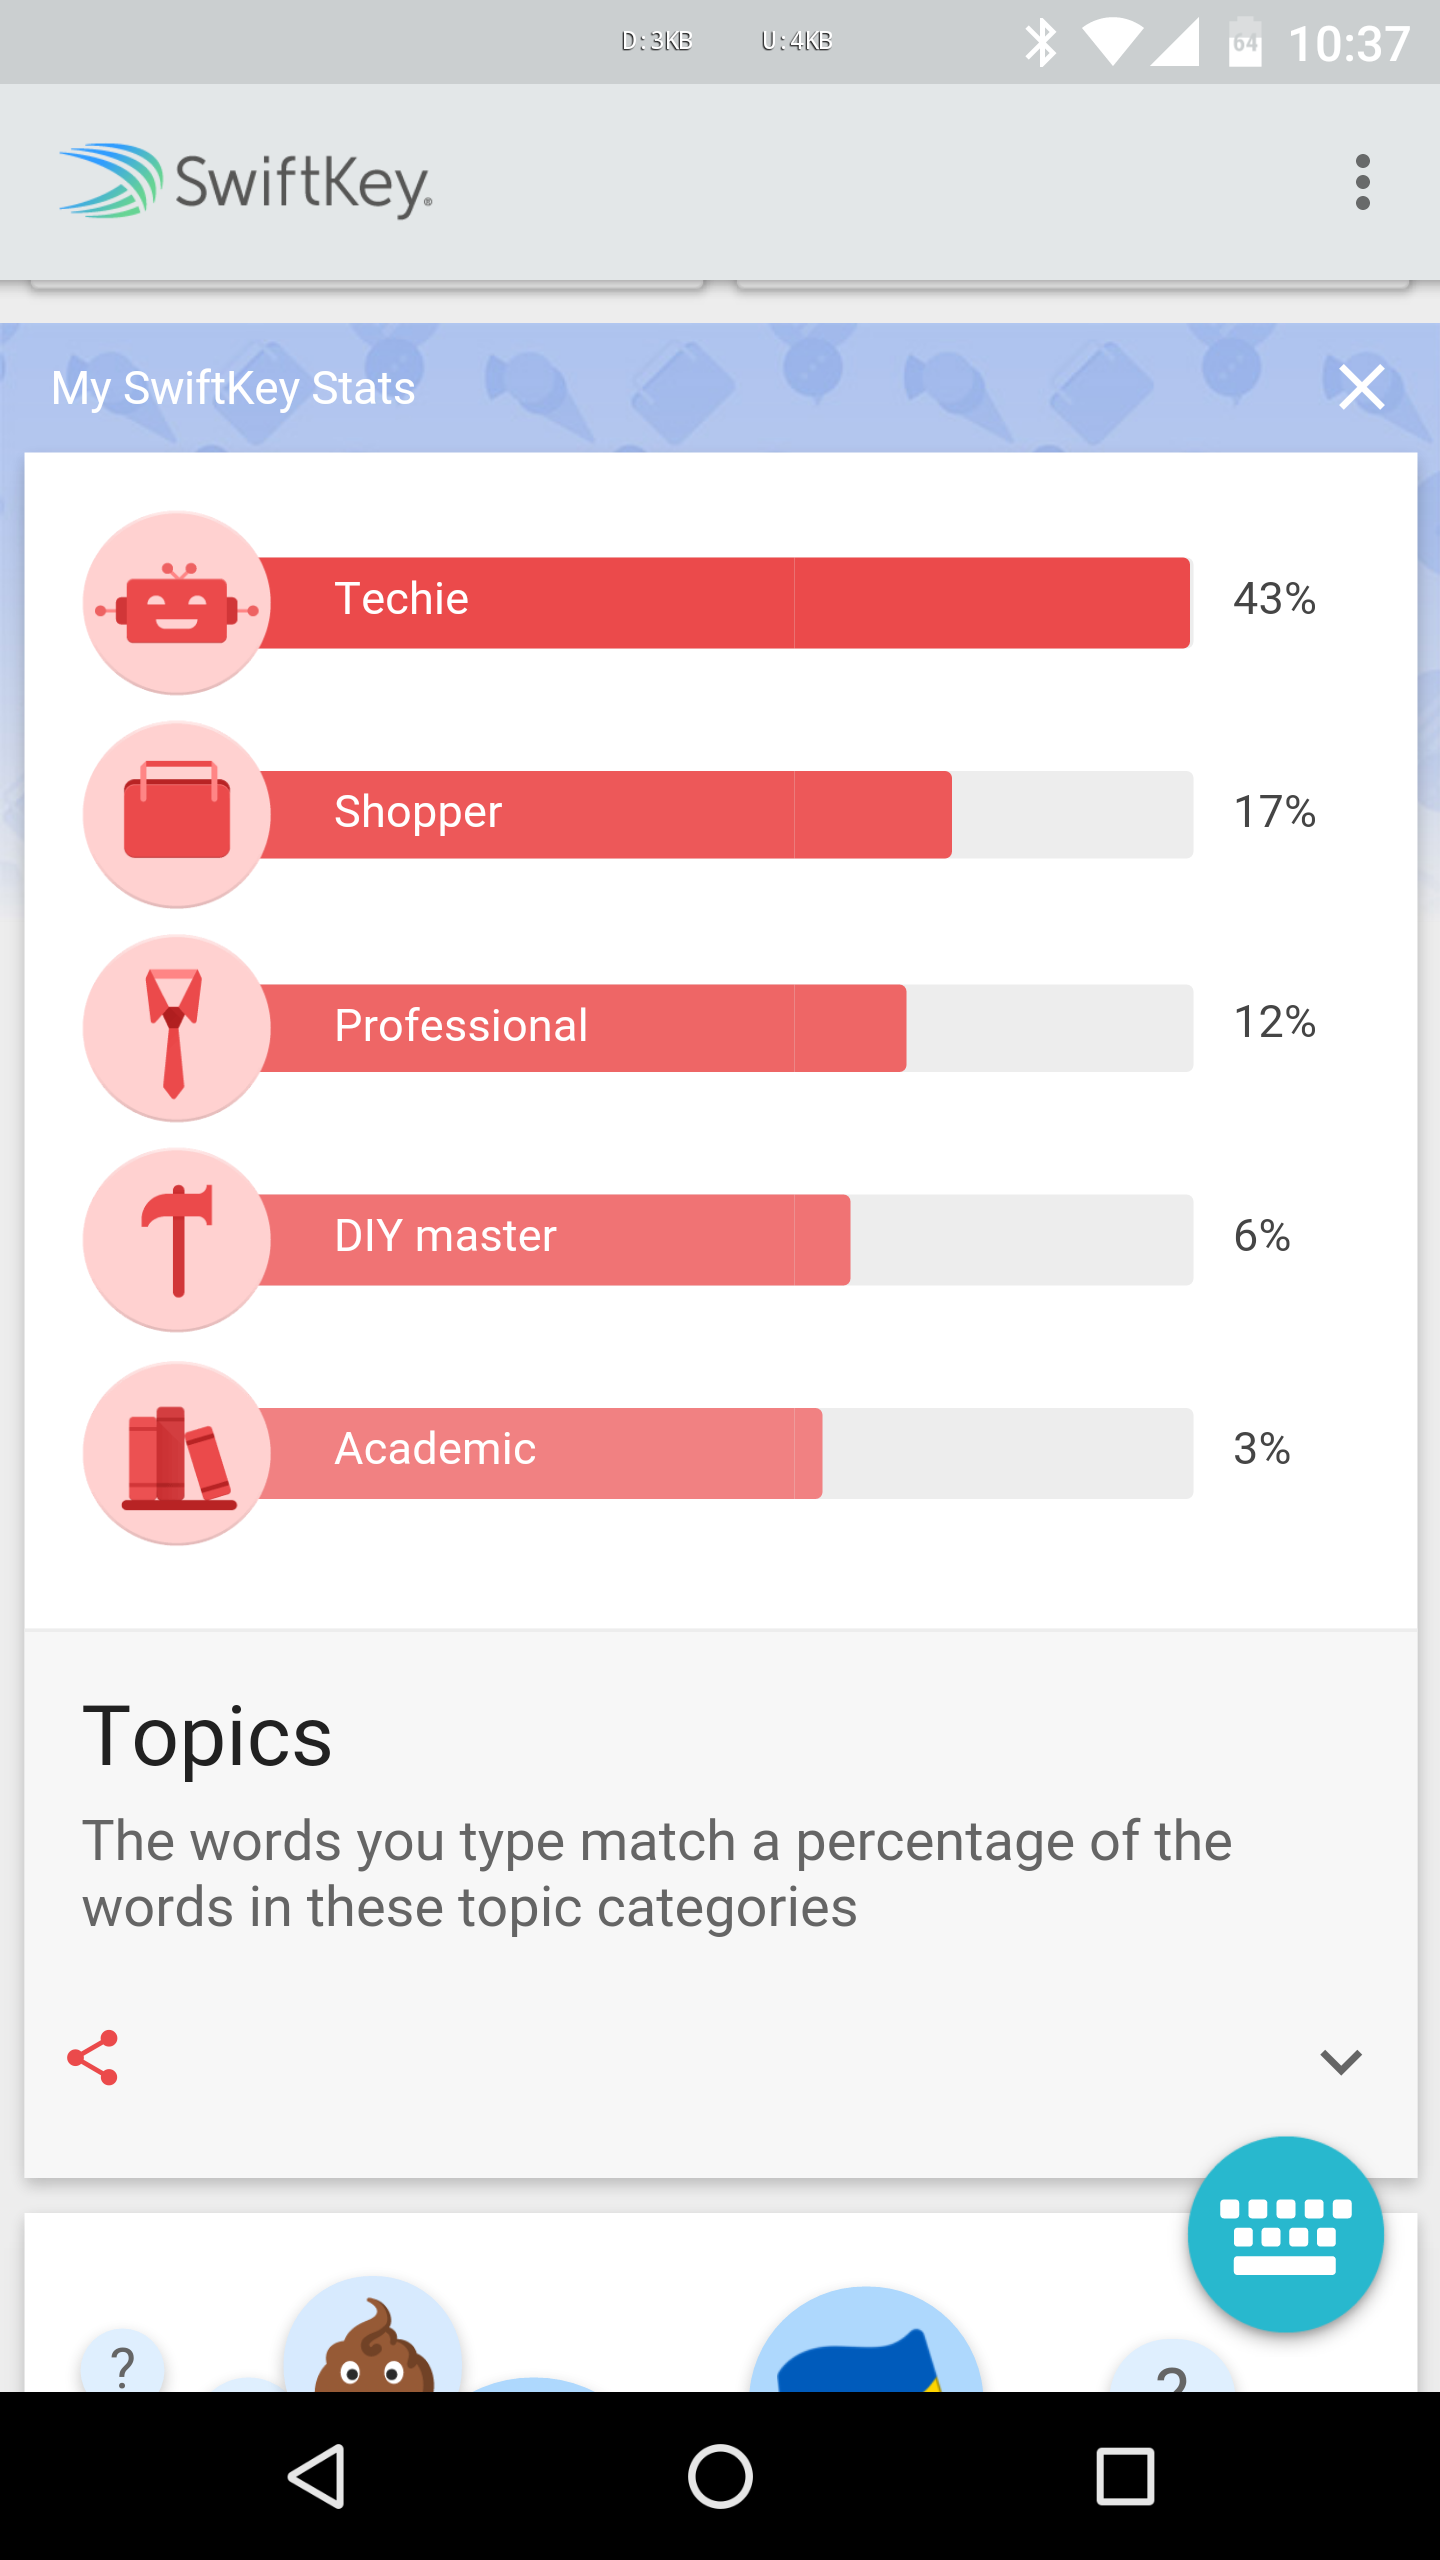 SwiftKey Stats Give You Insight Into Your Top Topics, Emojis